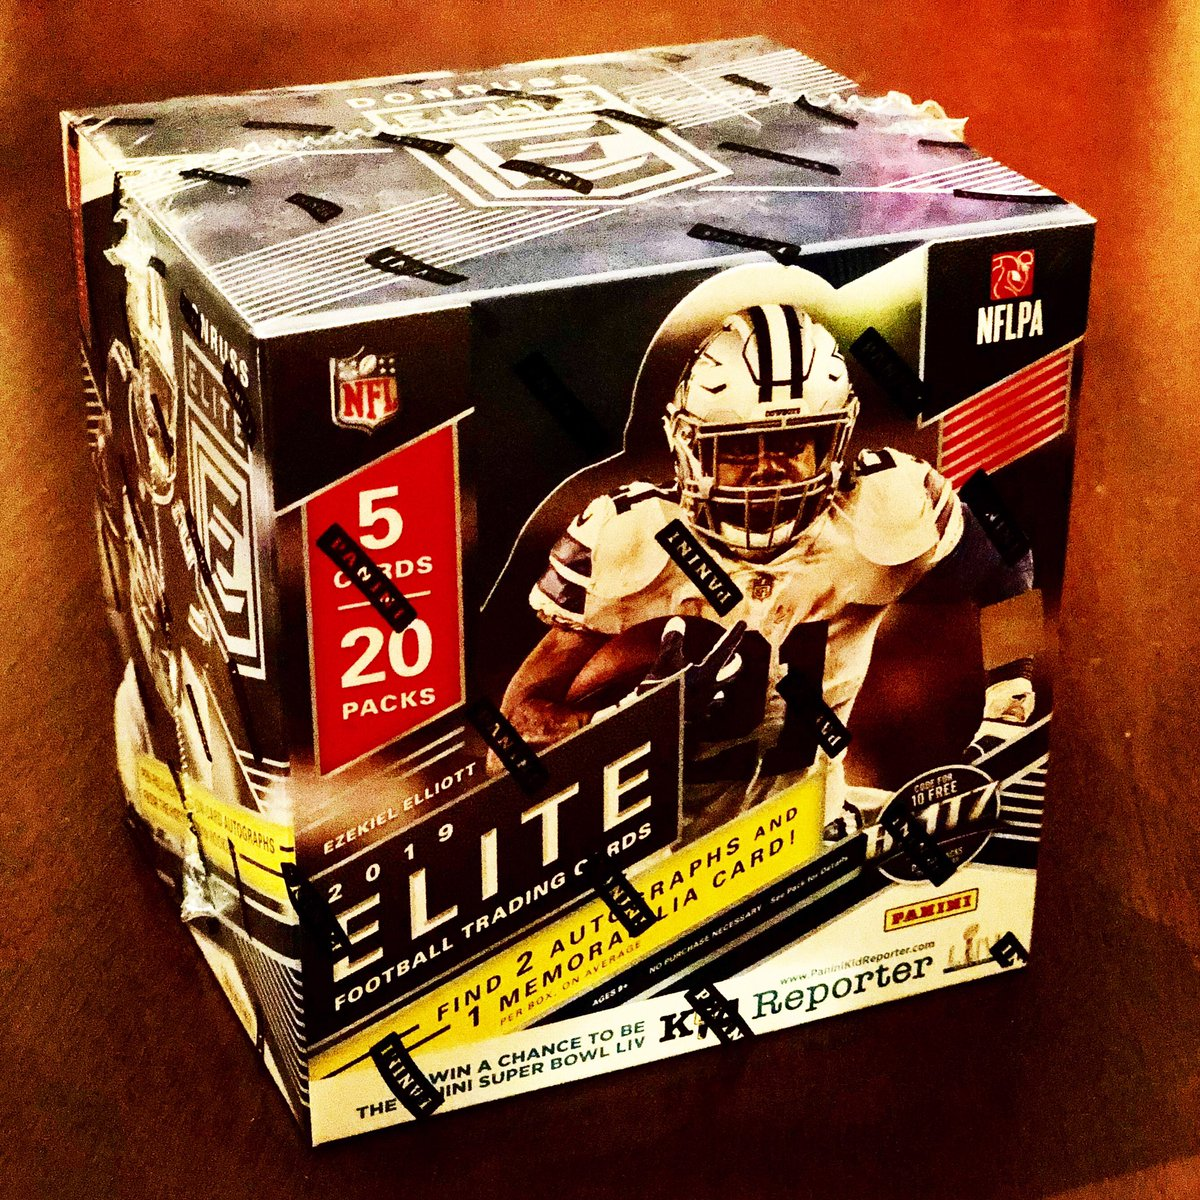 GIVEAWAY:  Win this unopened box of 2019 Elite Football from @PaniniAmerica   2Win: Like & RT this post, but most importantly - you must be subscribed to the PG YouTube channel:  http://youtube.com/user/PackGeek  Winner announced Fri 7/19 #TheHobby #Collect #SportsCards #Giveaway